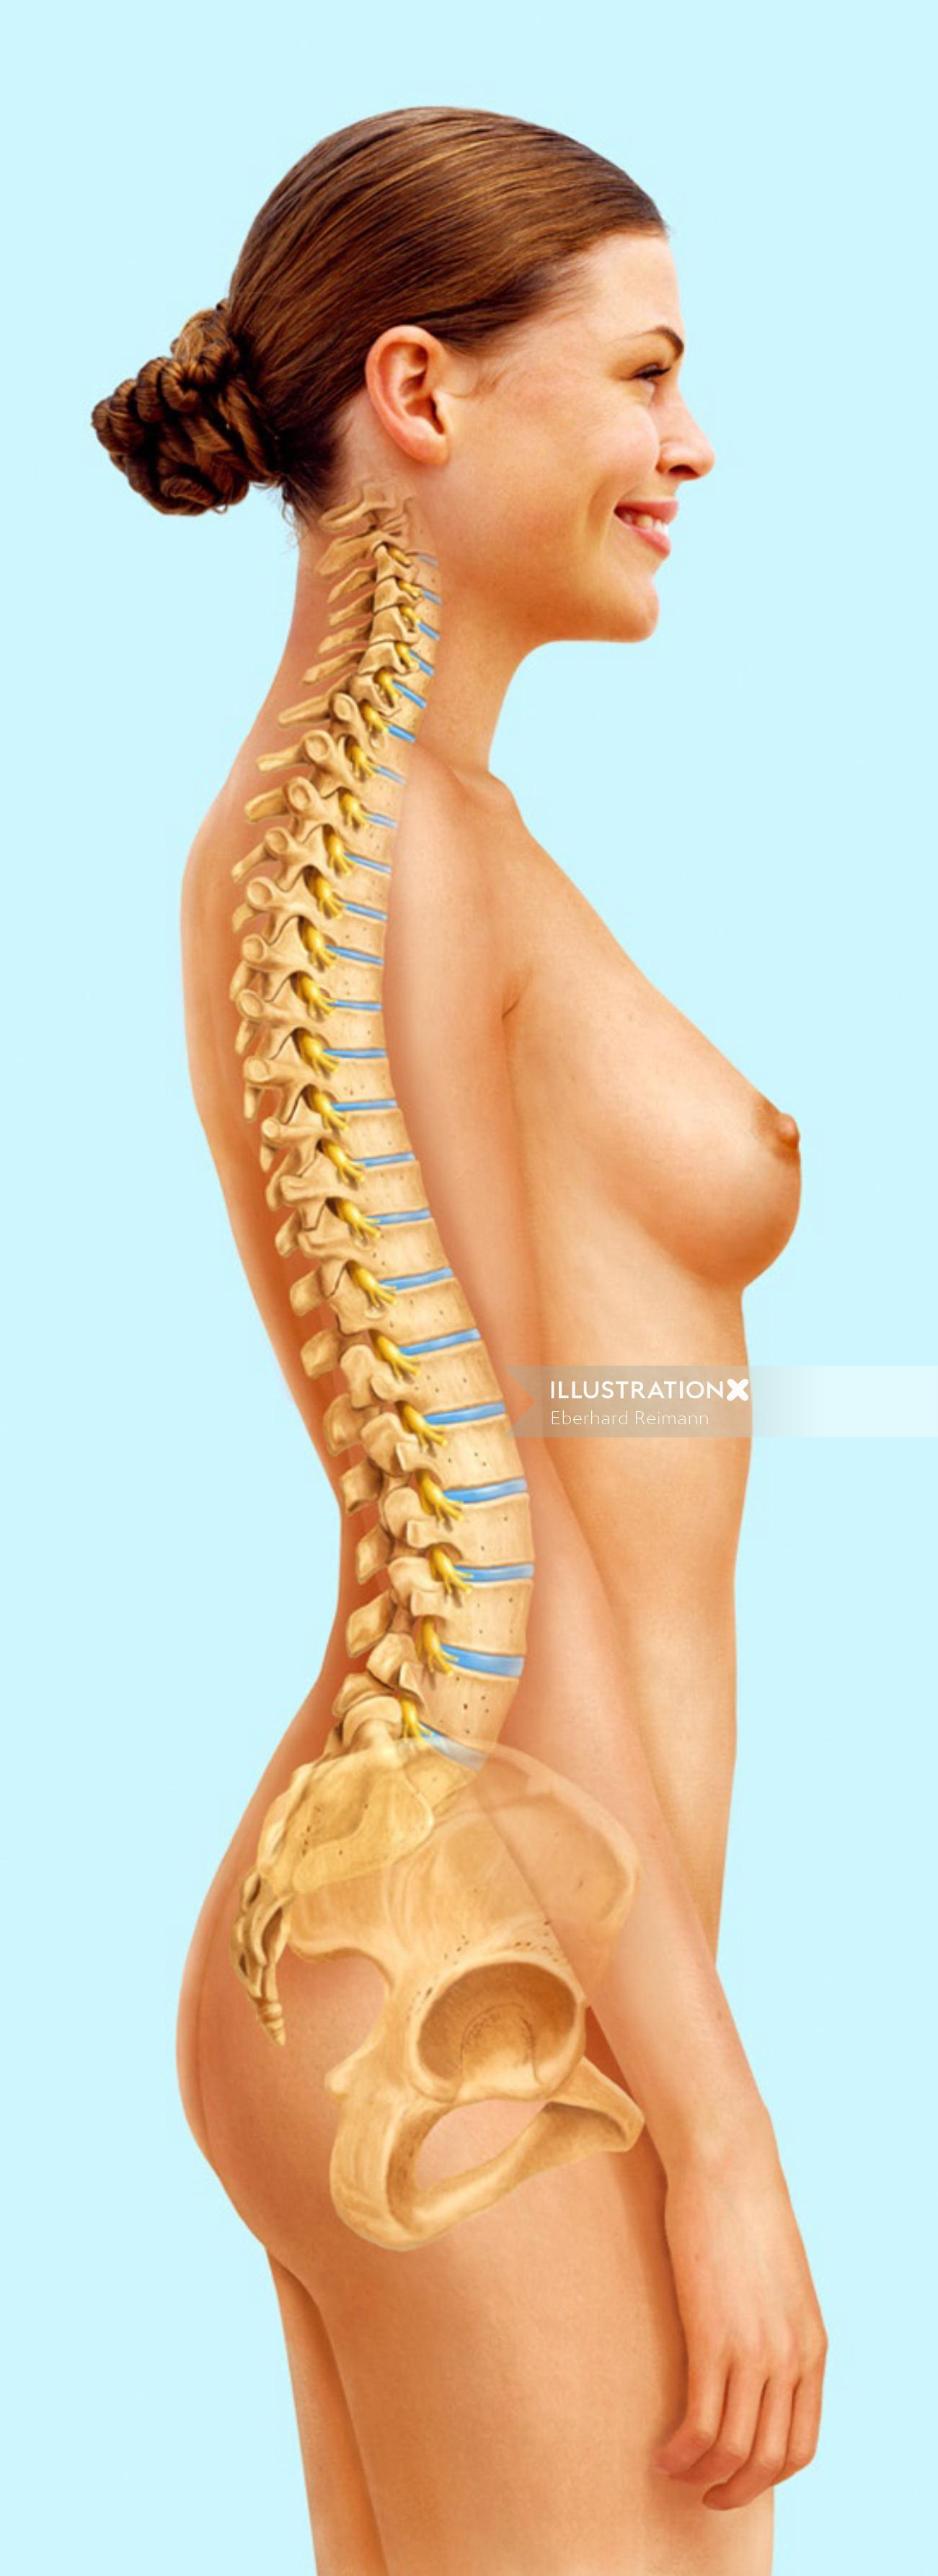 Woman backbone | Medical illustration collection